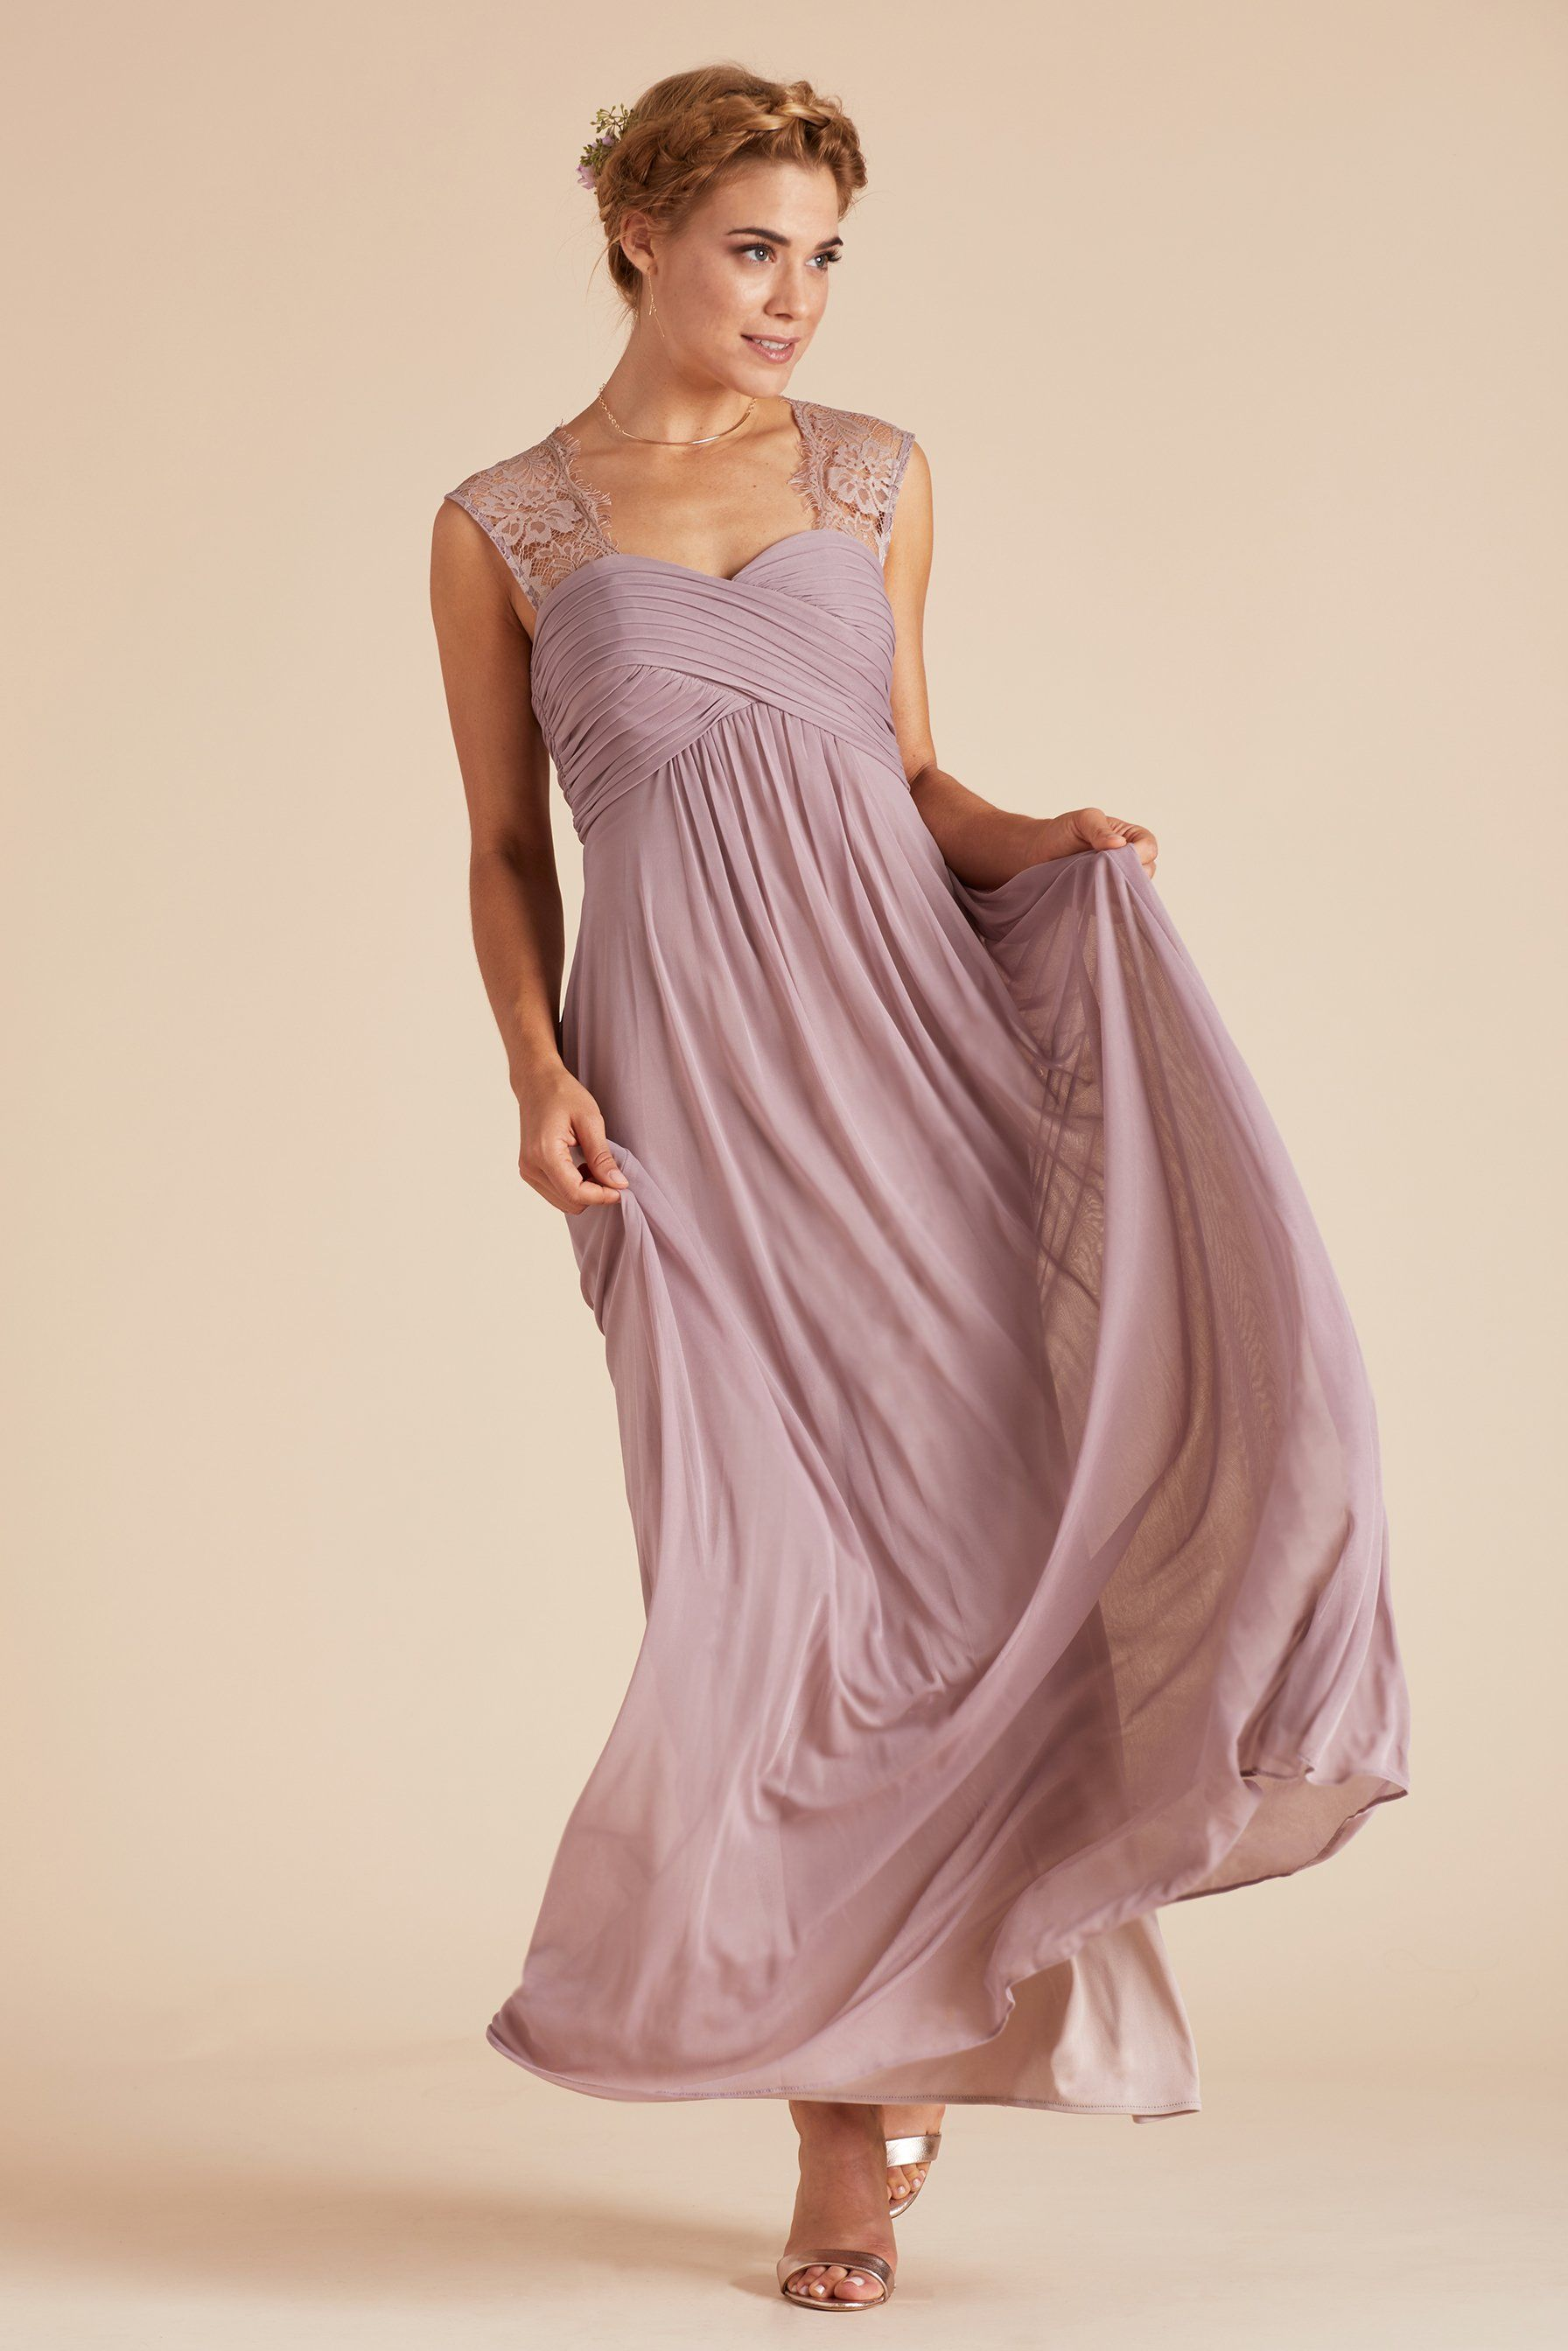 620dbacef3a Mary bridesmaid dress by Birdy Grey in Mauve. Vintage style lace empire  waist gown under  100.